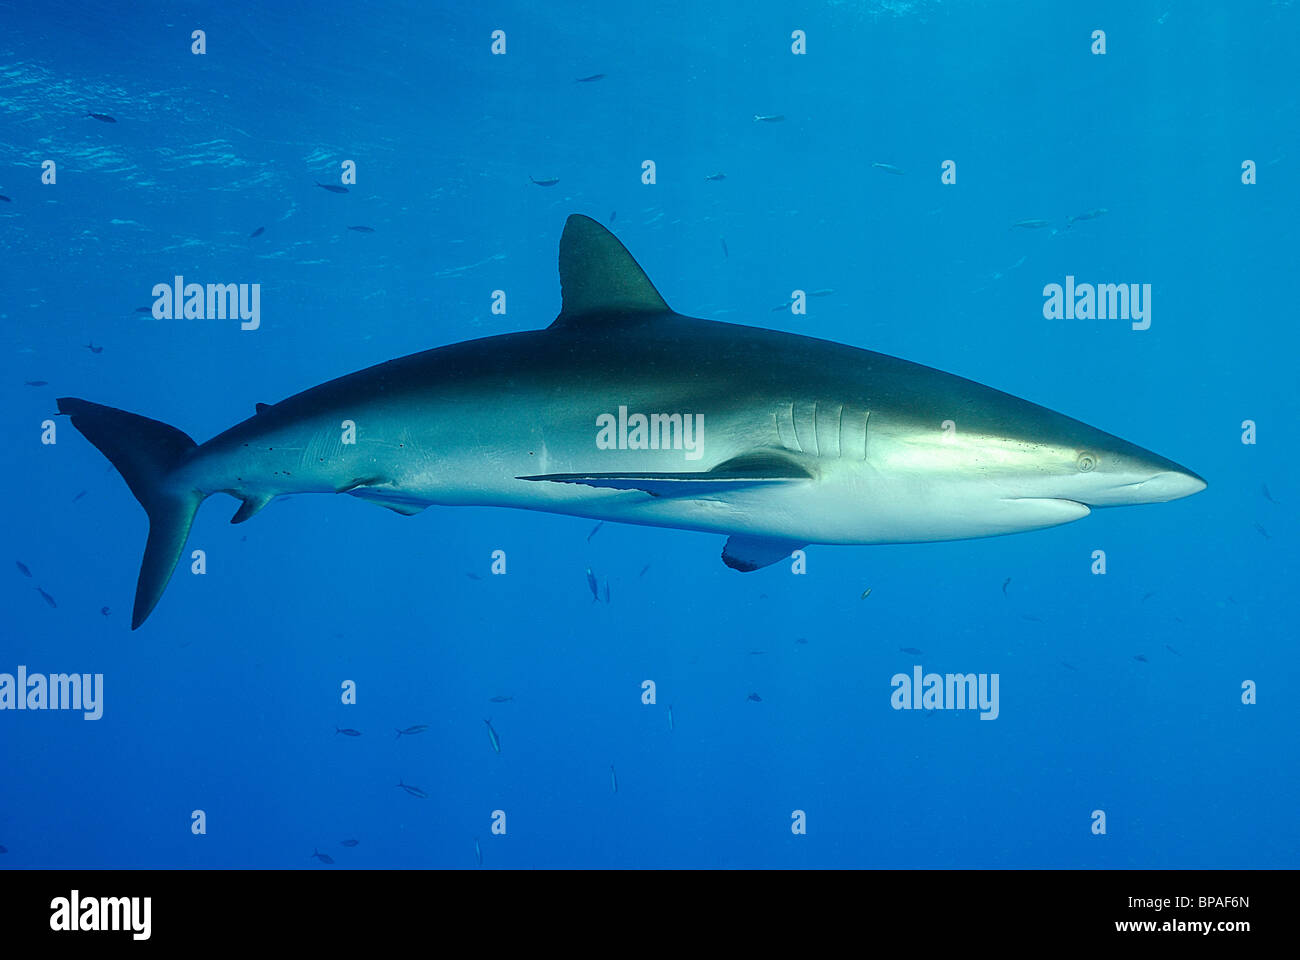 Silky shark swimming off Daedalus Reef, Red Sea, off coast of Egypt Stock Photo